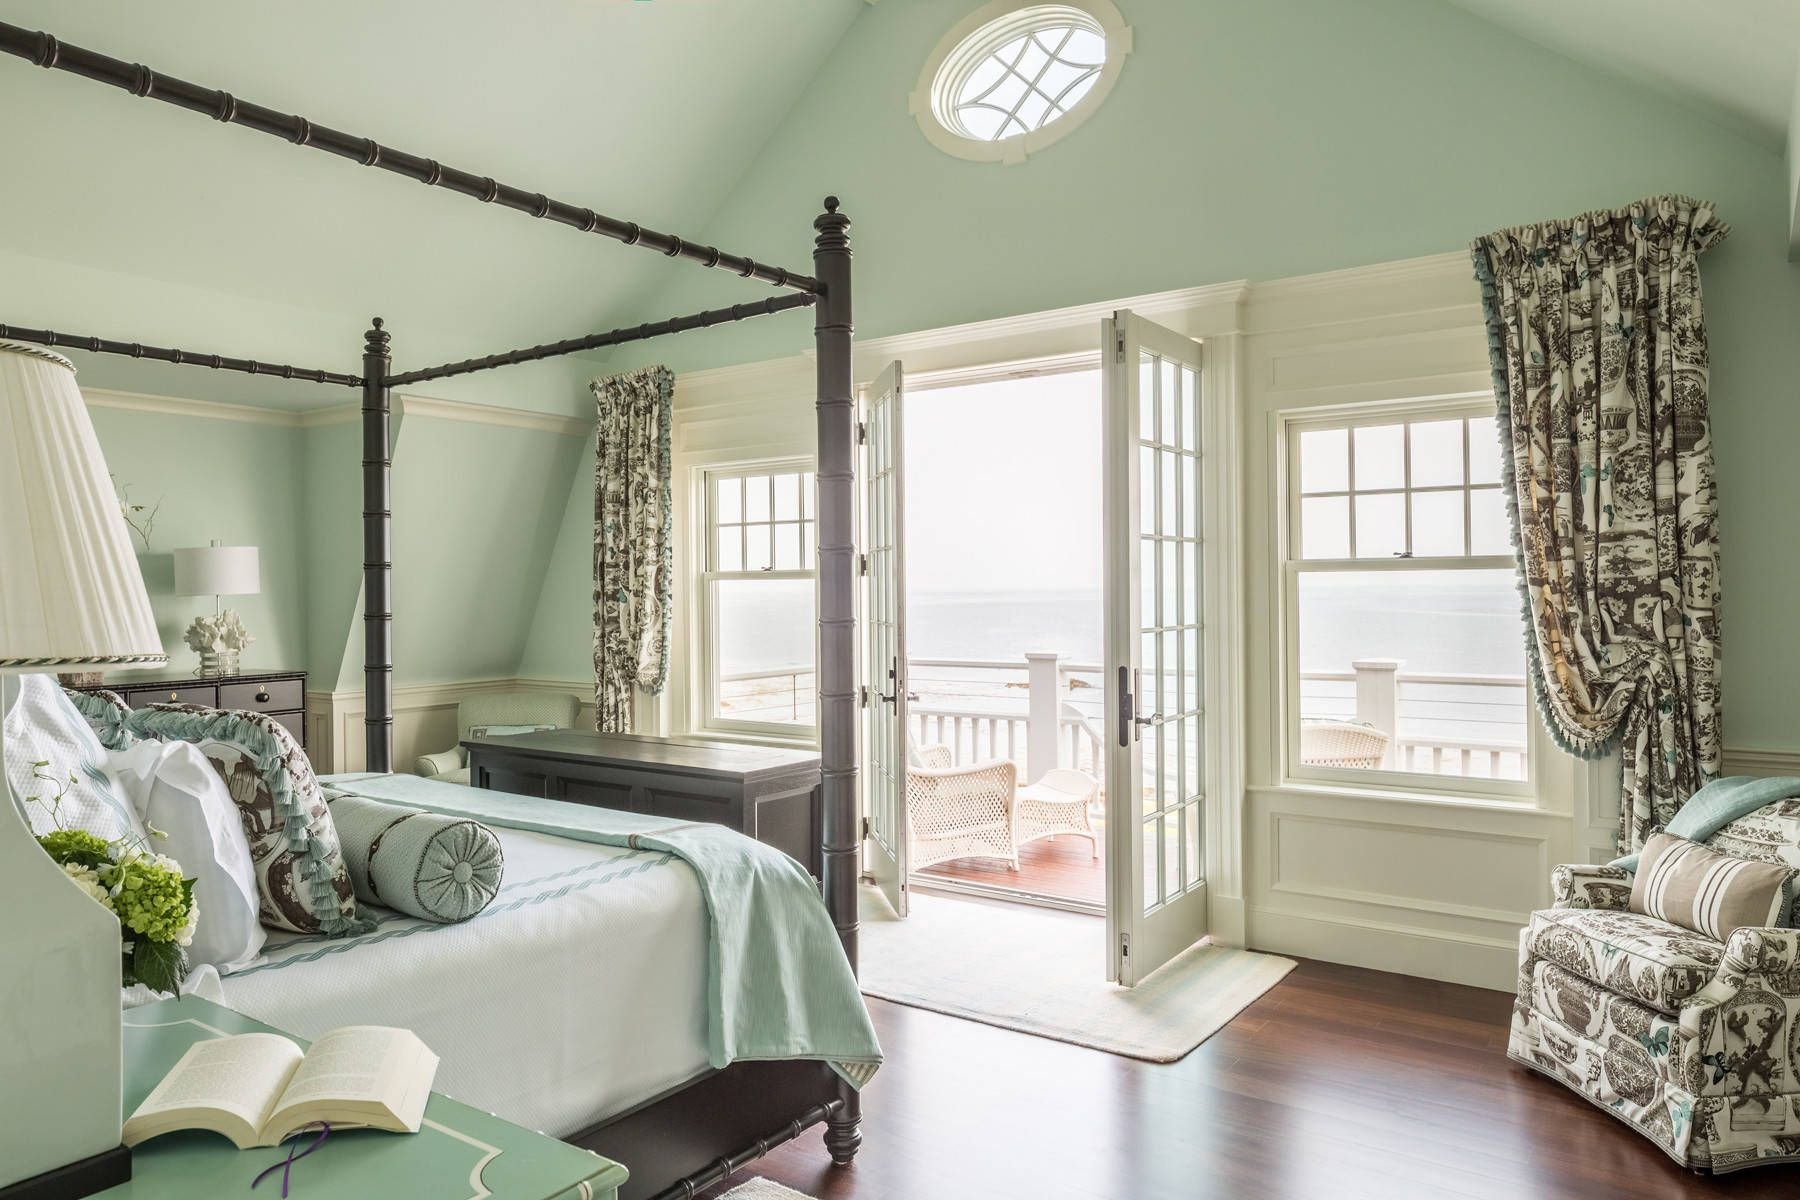 The Four Best Paint Colors For Bedrooms | Seafoam green ...